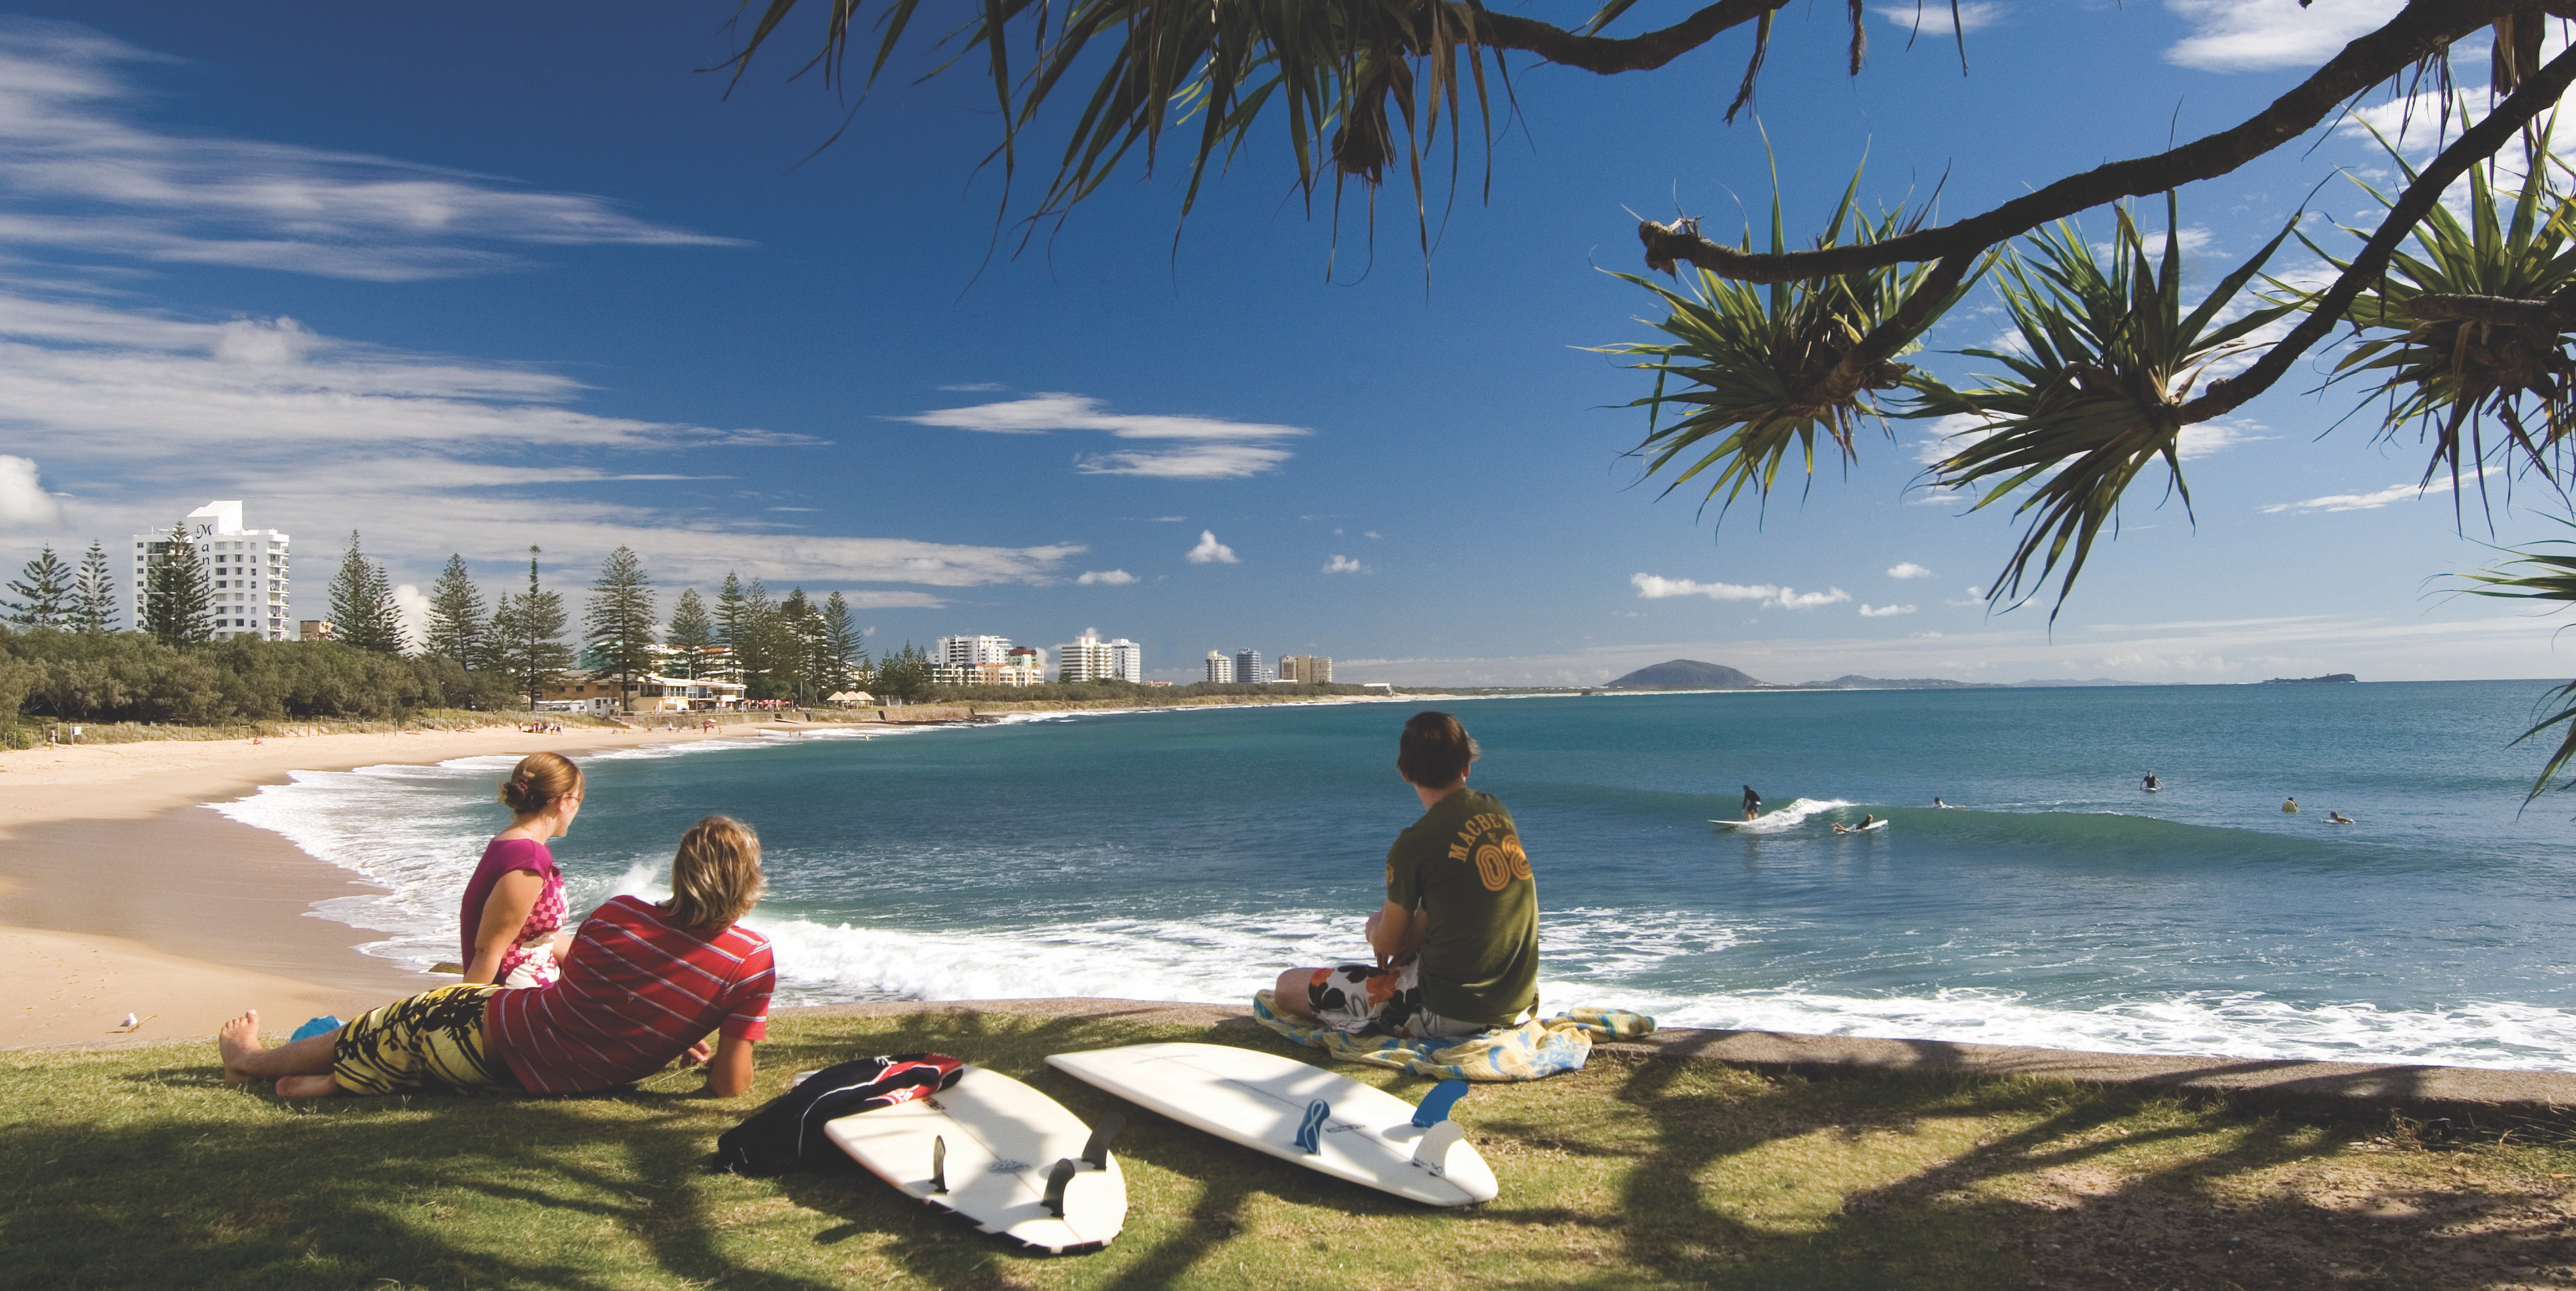 /es/noticia/post/vida-estudiantil-en-la-sunshine-coast-de-australia